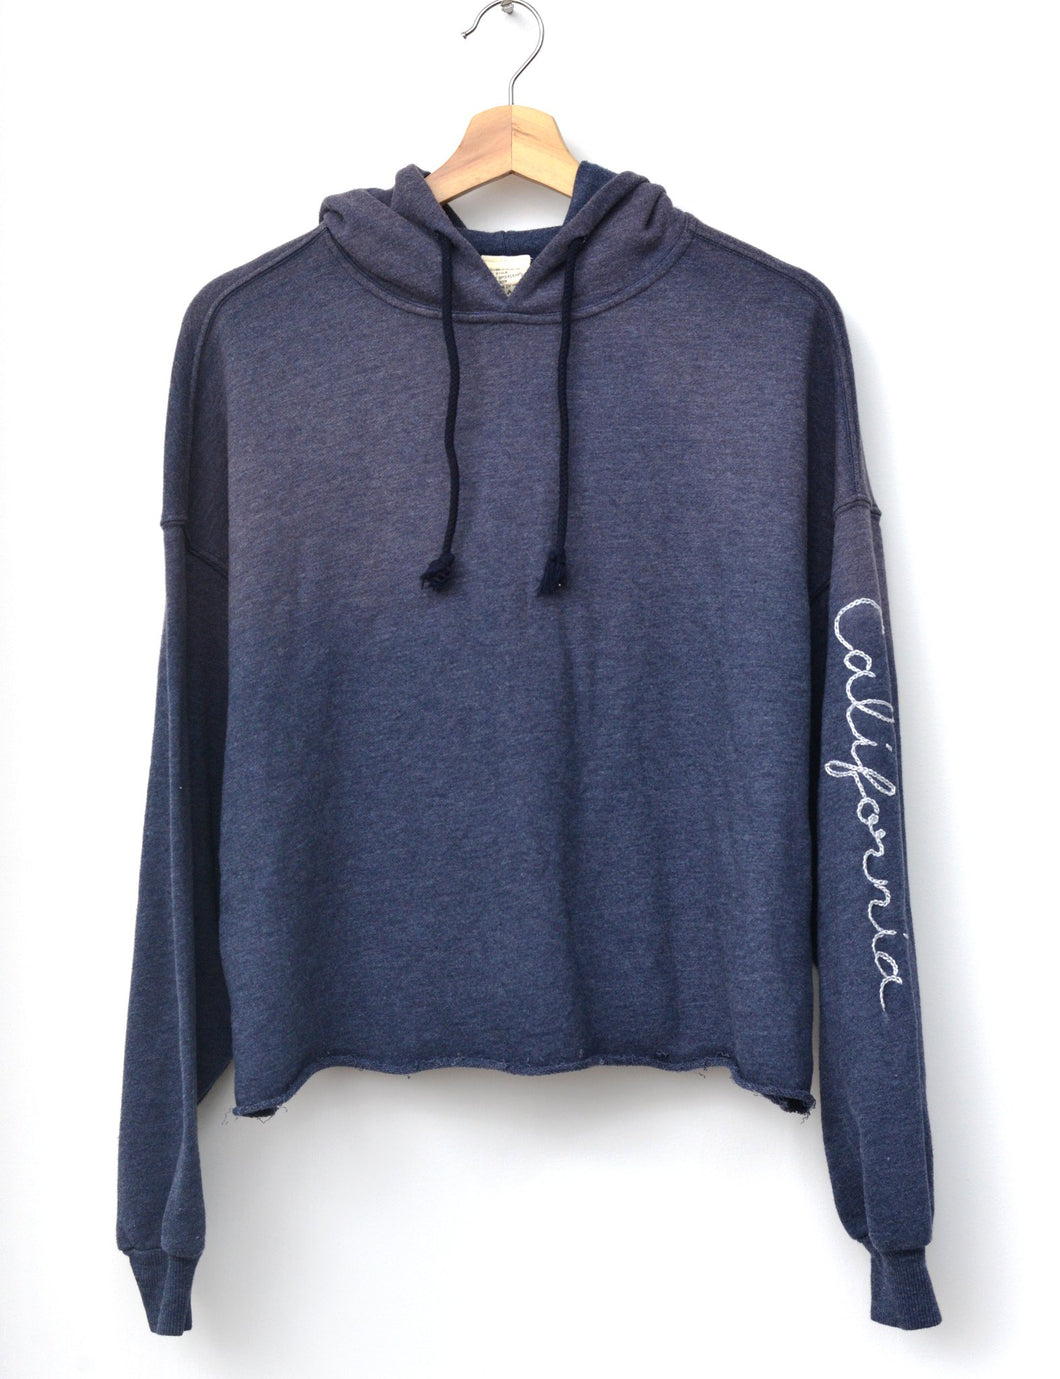 NAVY L/S HOODIE WITH CUSTOM HAND EMBROIDERY ON SLEEVE